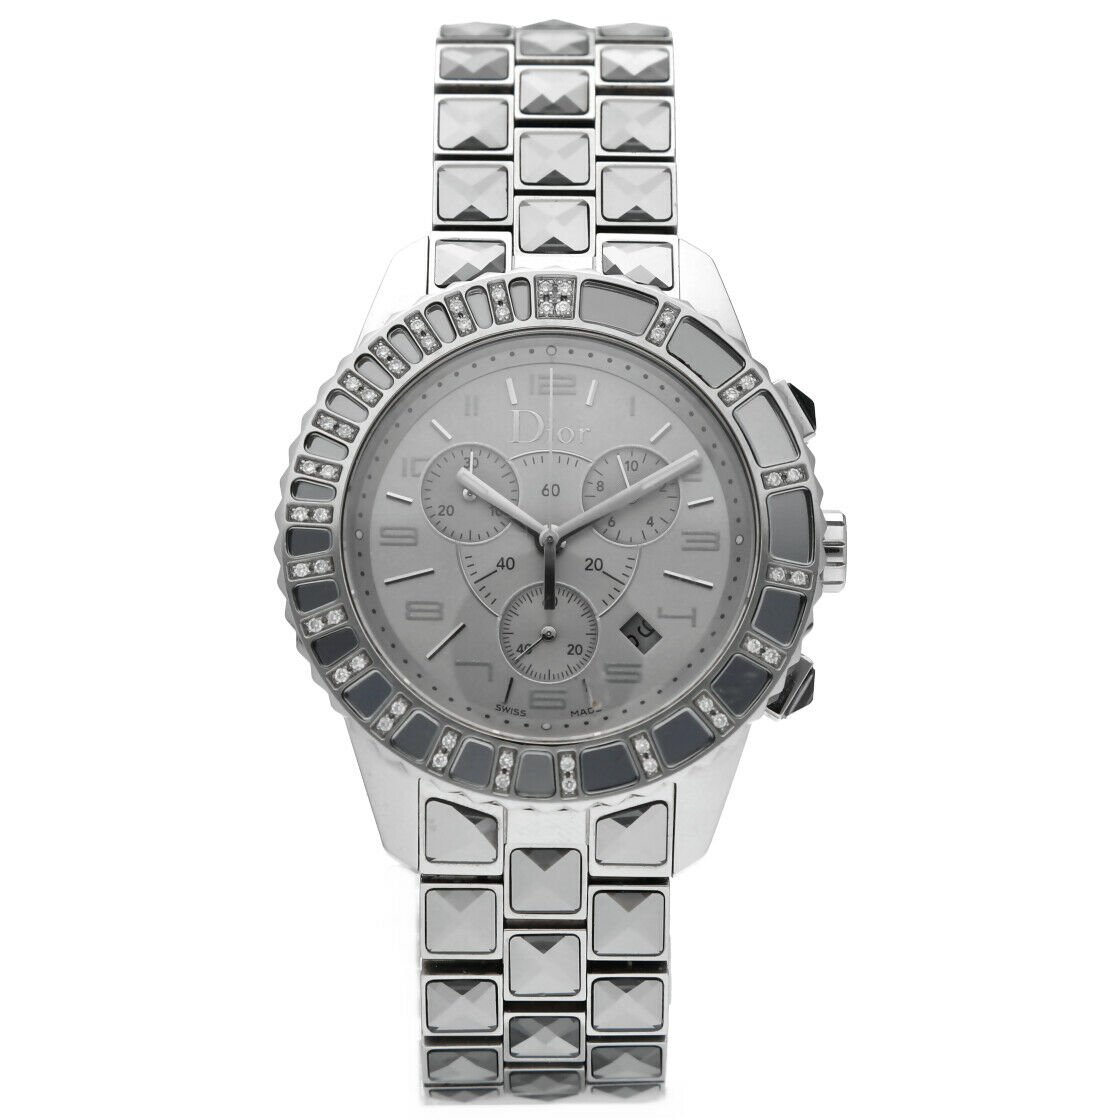 Christian Dior CD114313 Crystal Diamond Bezel Steel Silver Quartz Wrist Watch 123561068829